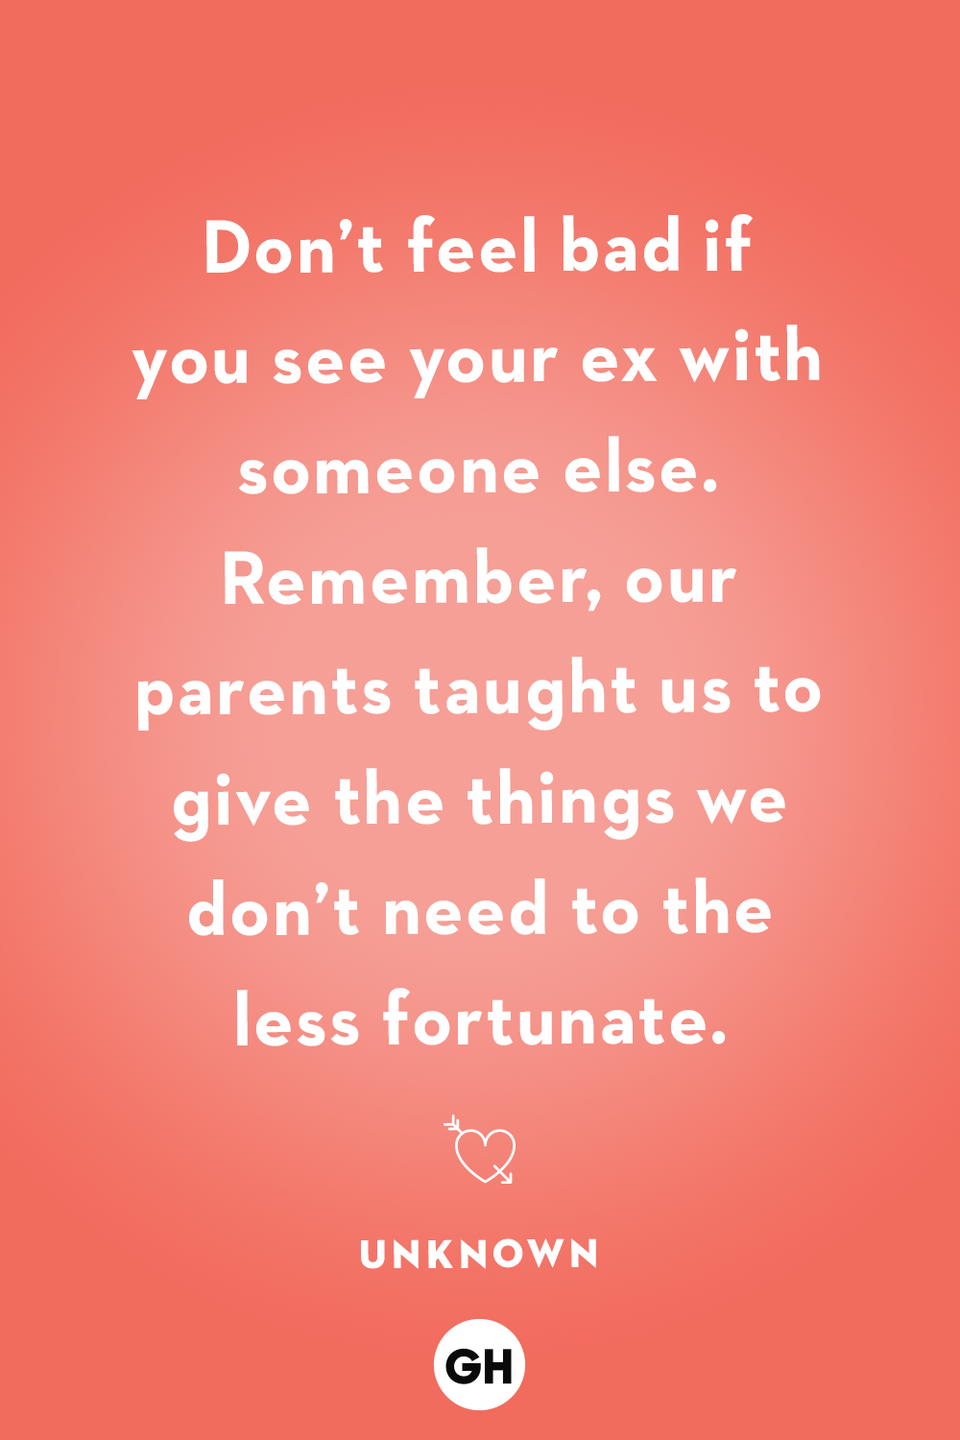 <p>Don't feel bad if you see your ex with someone else. Remember, our parents taught us to give the things we don't need to the less fortunate.</p>